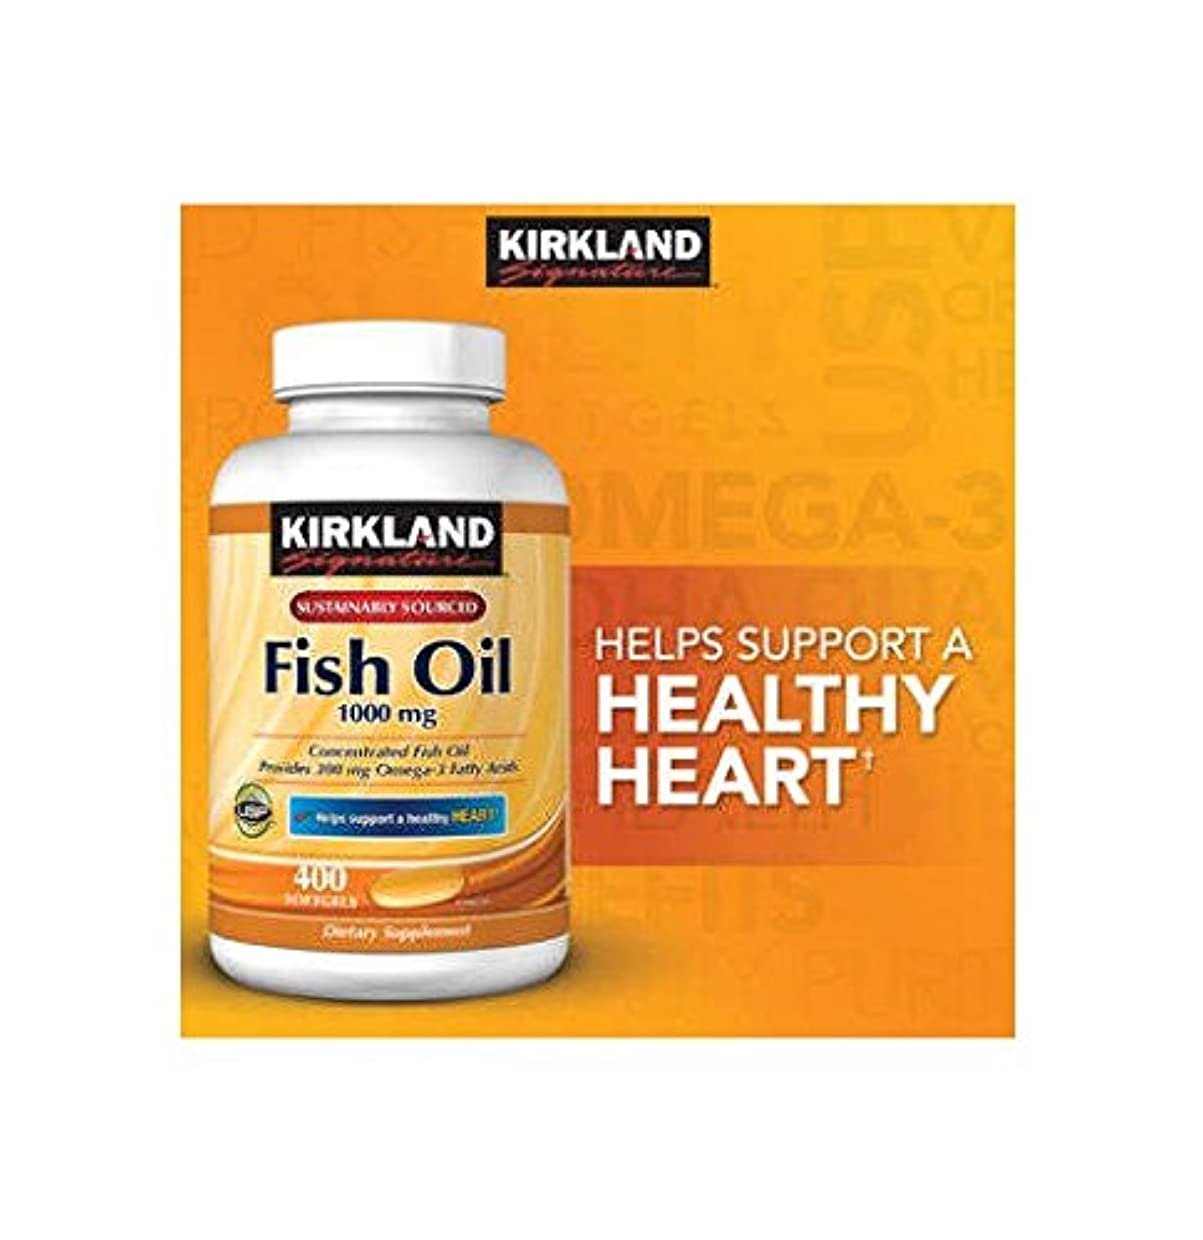 血血色の良い競争Kirkland Signature Omega-3 Fish Oil Concentrate, 400 Softgels, 1000 mg Fish Oil with 30% Omega-3s (300 mg) 1200...